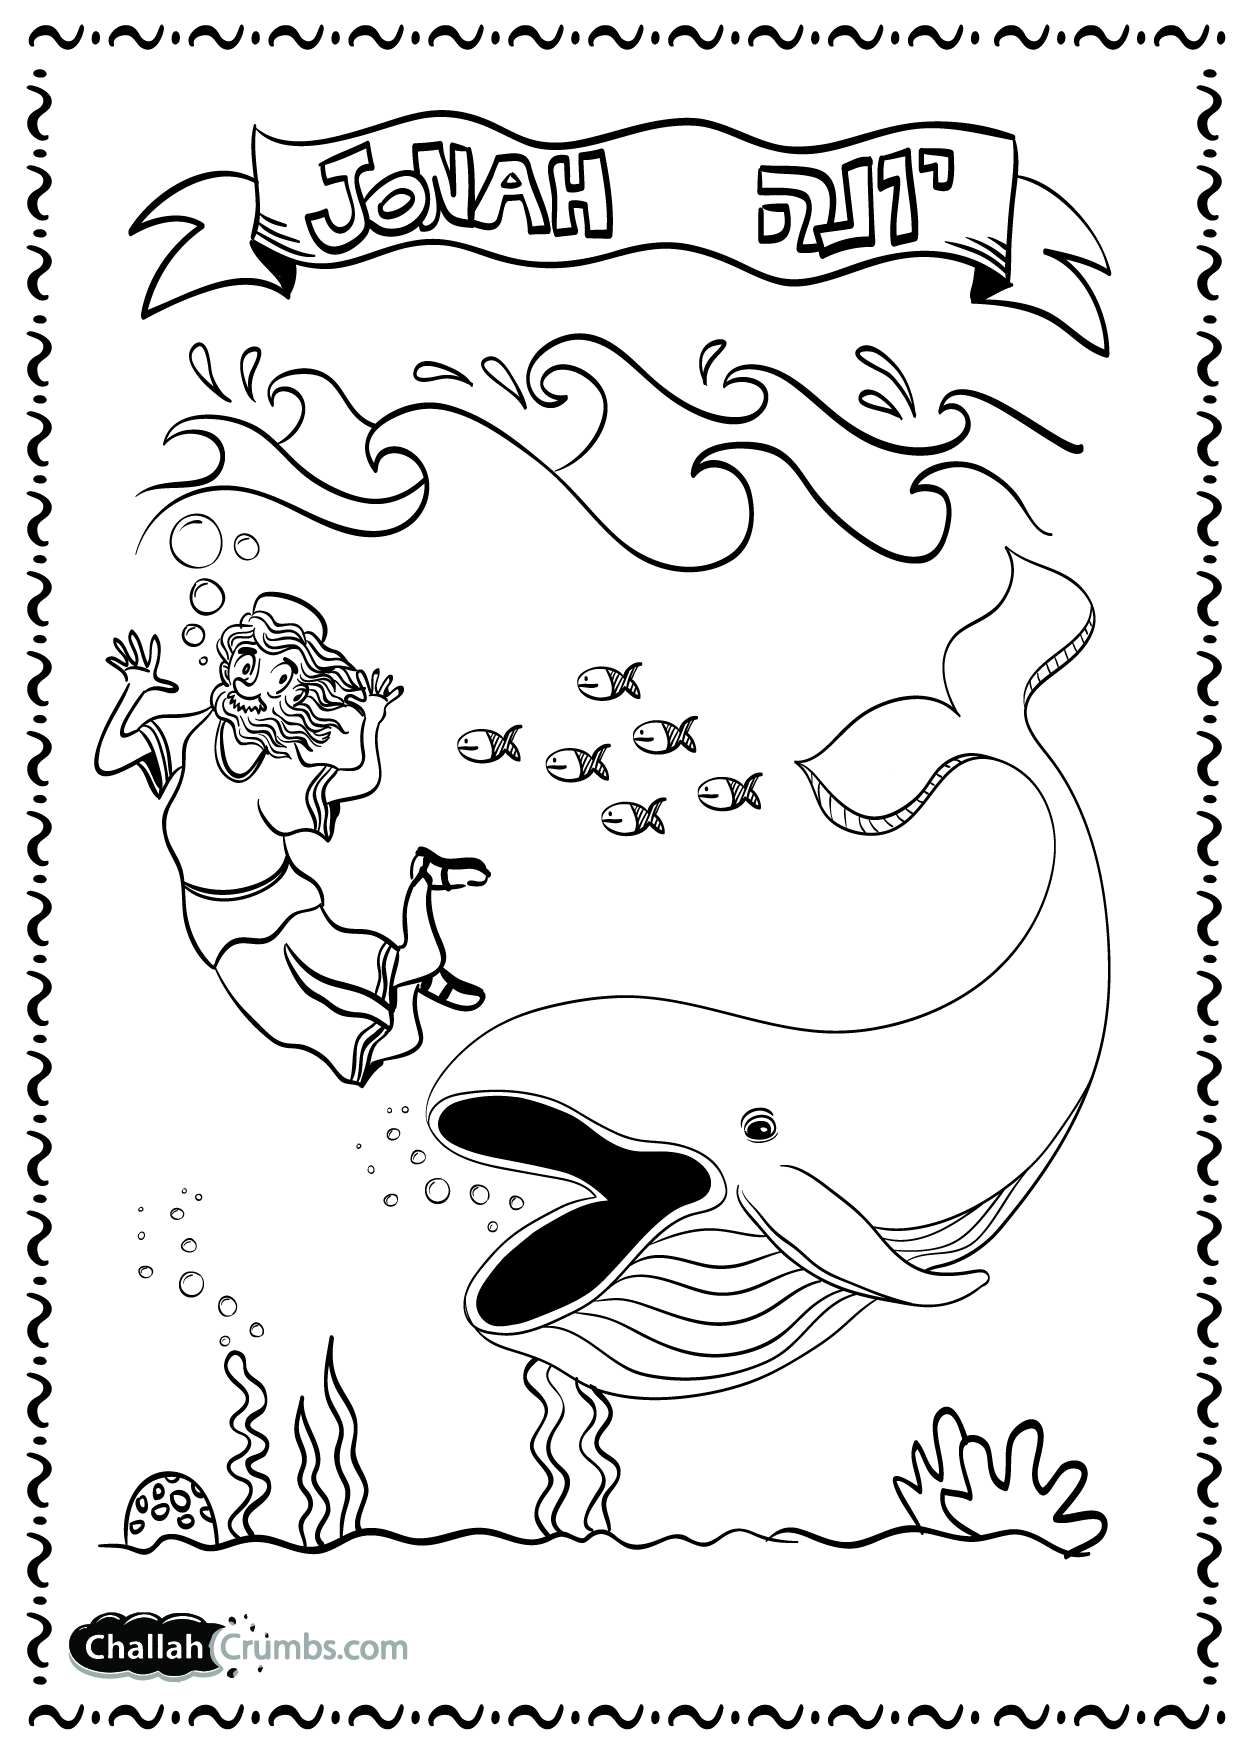 Rosh Hashanah Coloring Pages At Getcolorings